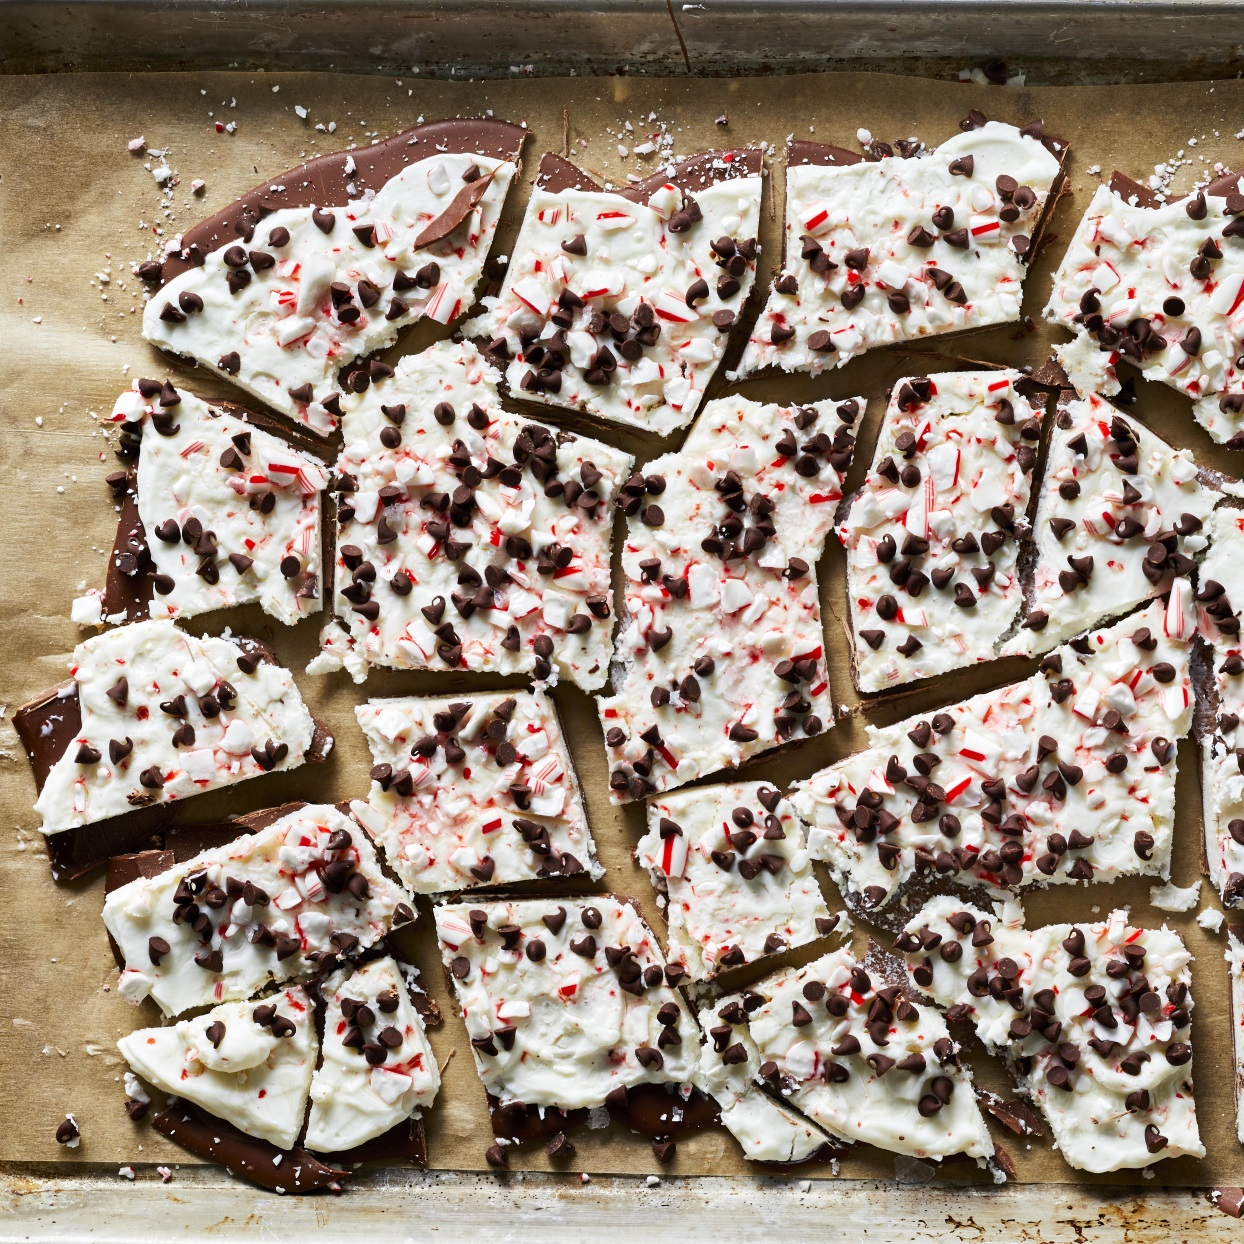 This eye-catching frozen peppermint-chocolate bark was inspired by Williams Sonoma's Original Peppermint Bark—our loose interpretation of the treat is frozen and made with Greek yogurt, chocolate and crushed candy canes. For the creamiest bark, be sure to use full-fat yogurt, as fat-free yogurt can get icy when frozen. Serve this healthy dessert when you want all those festive holiday flavors in a lightened-up—and totally delicious—package. Just don't stuff your Christmas stockings with this bark because it melts quickly.